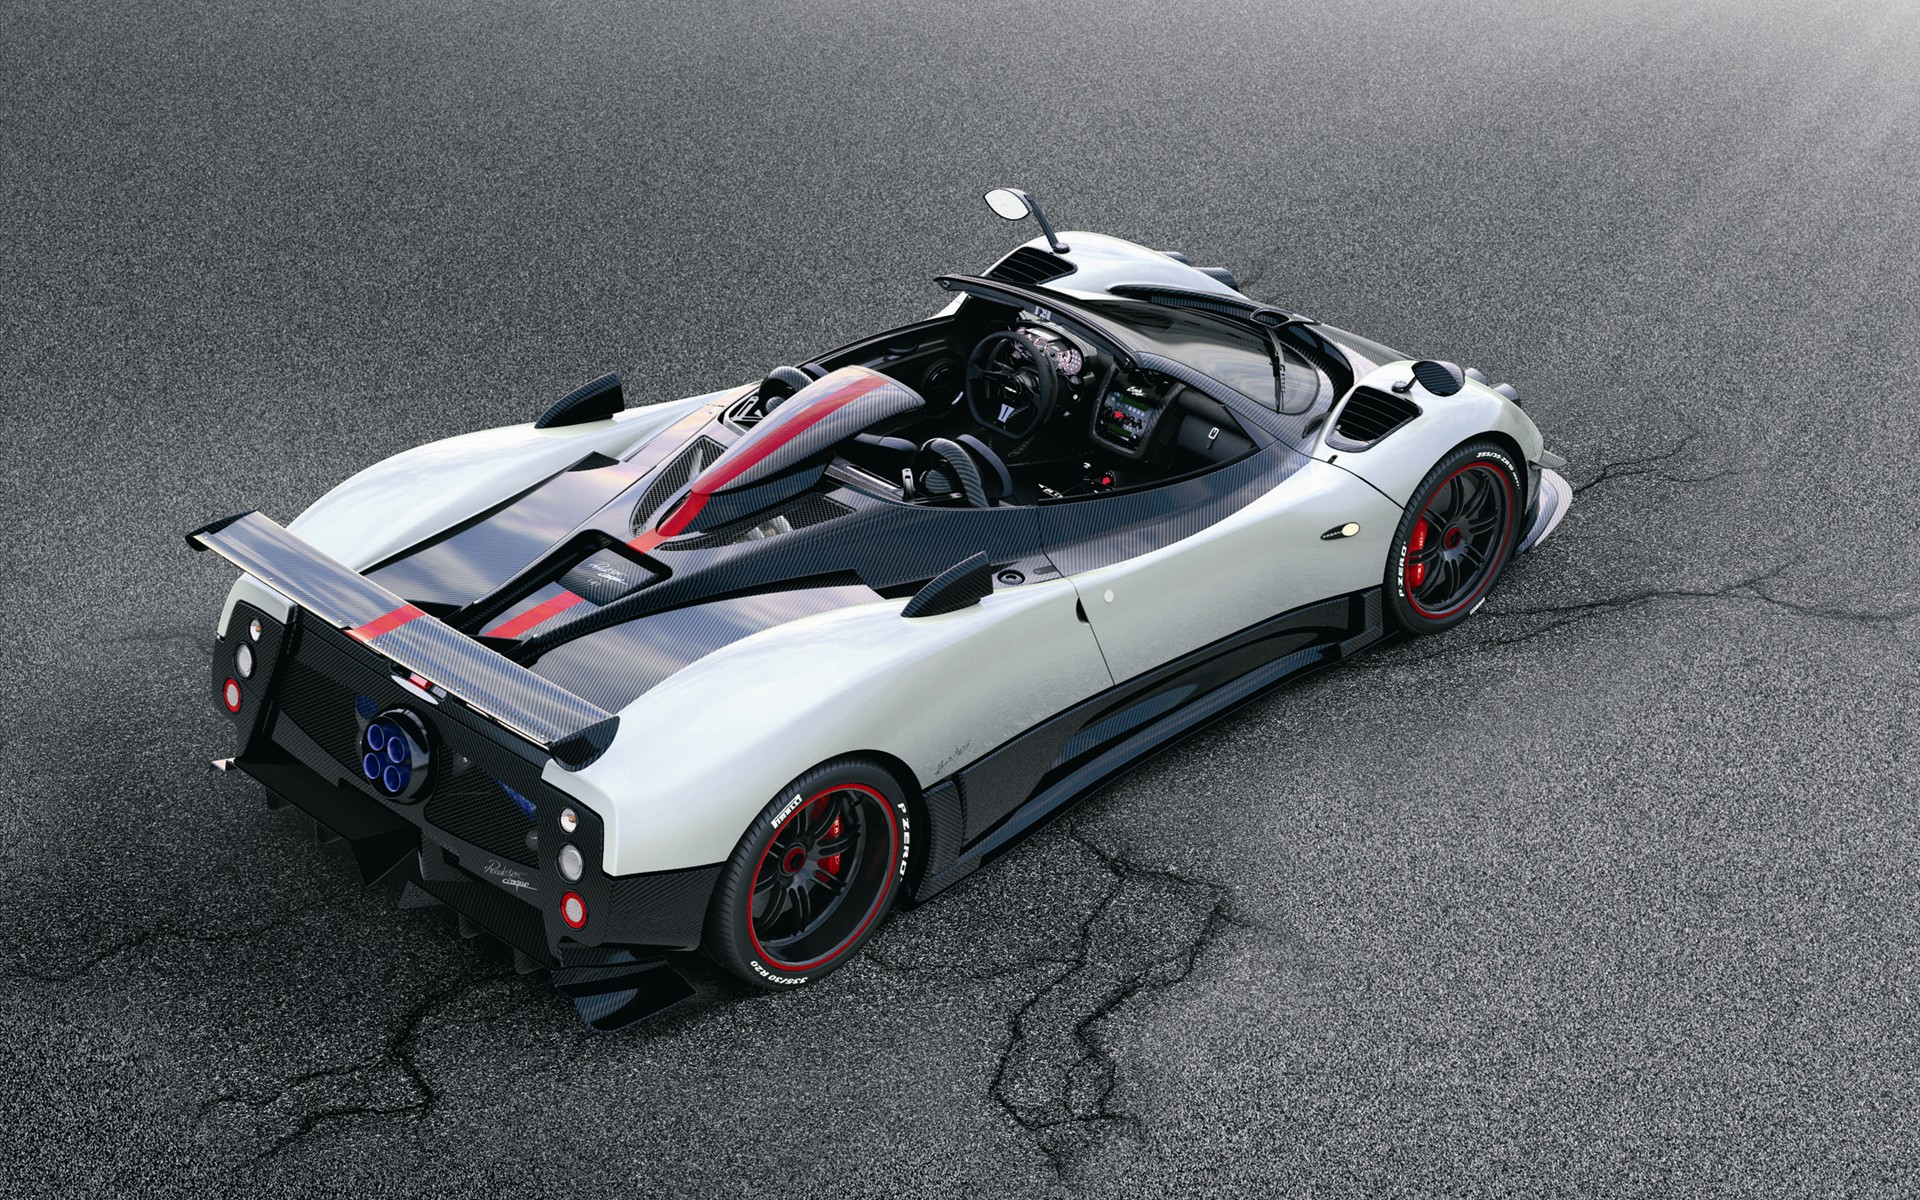 super fast car wallpapers and images wallpapers pictures photos - Super Fast Cars